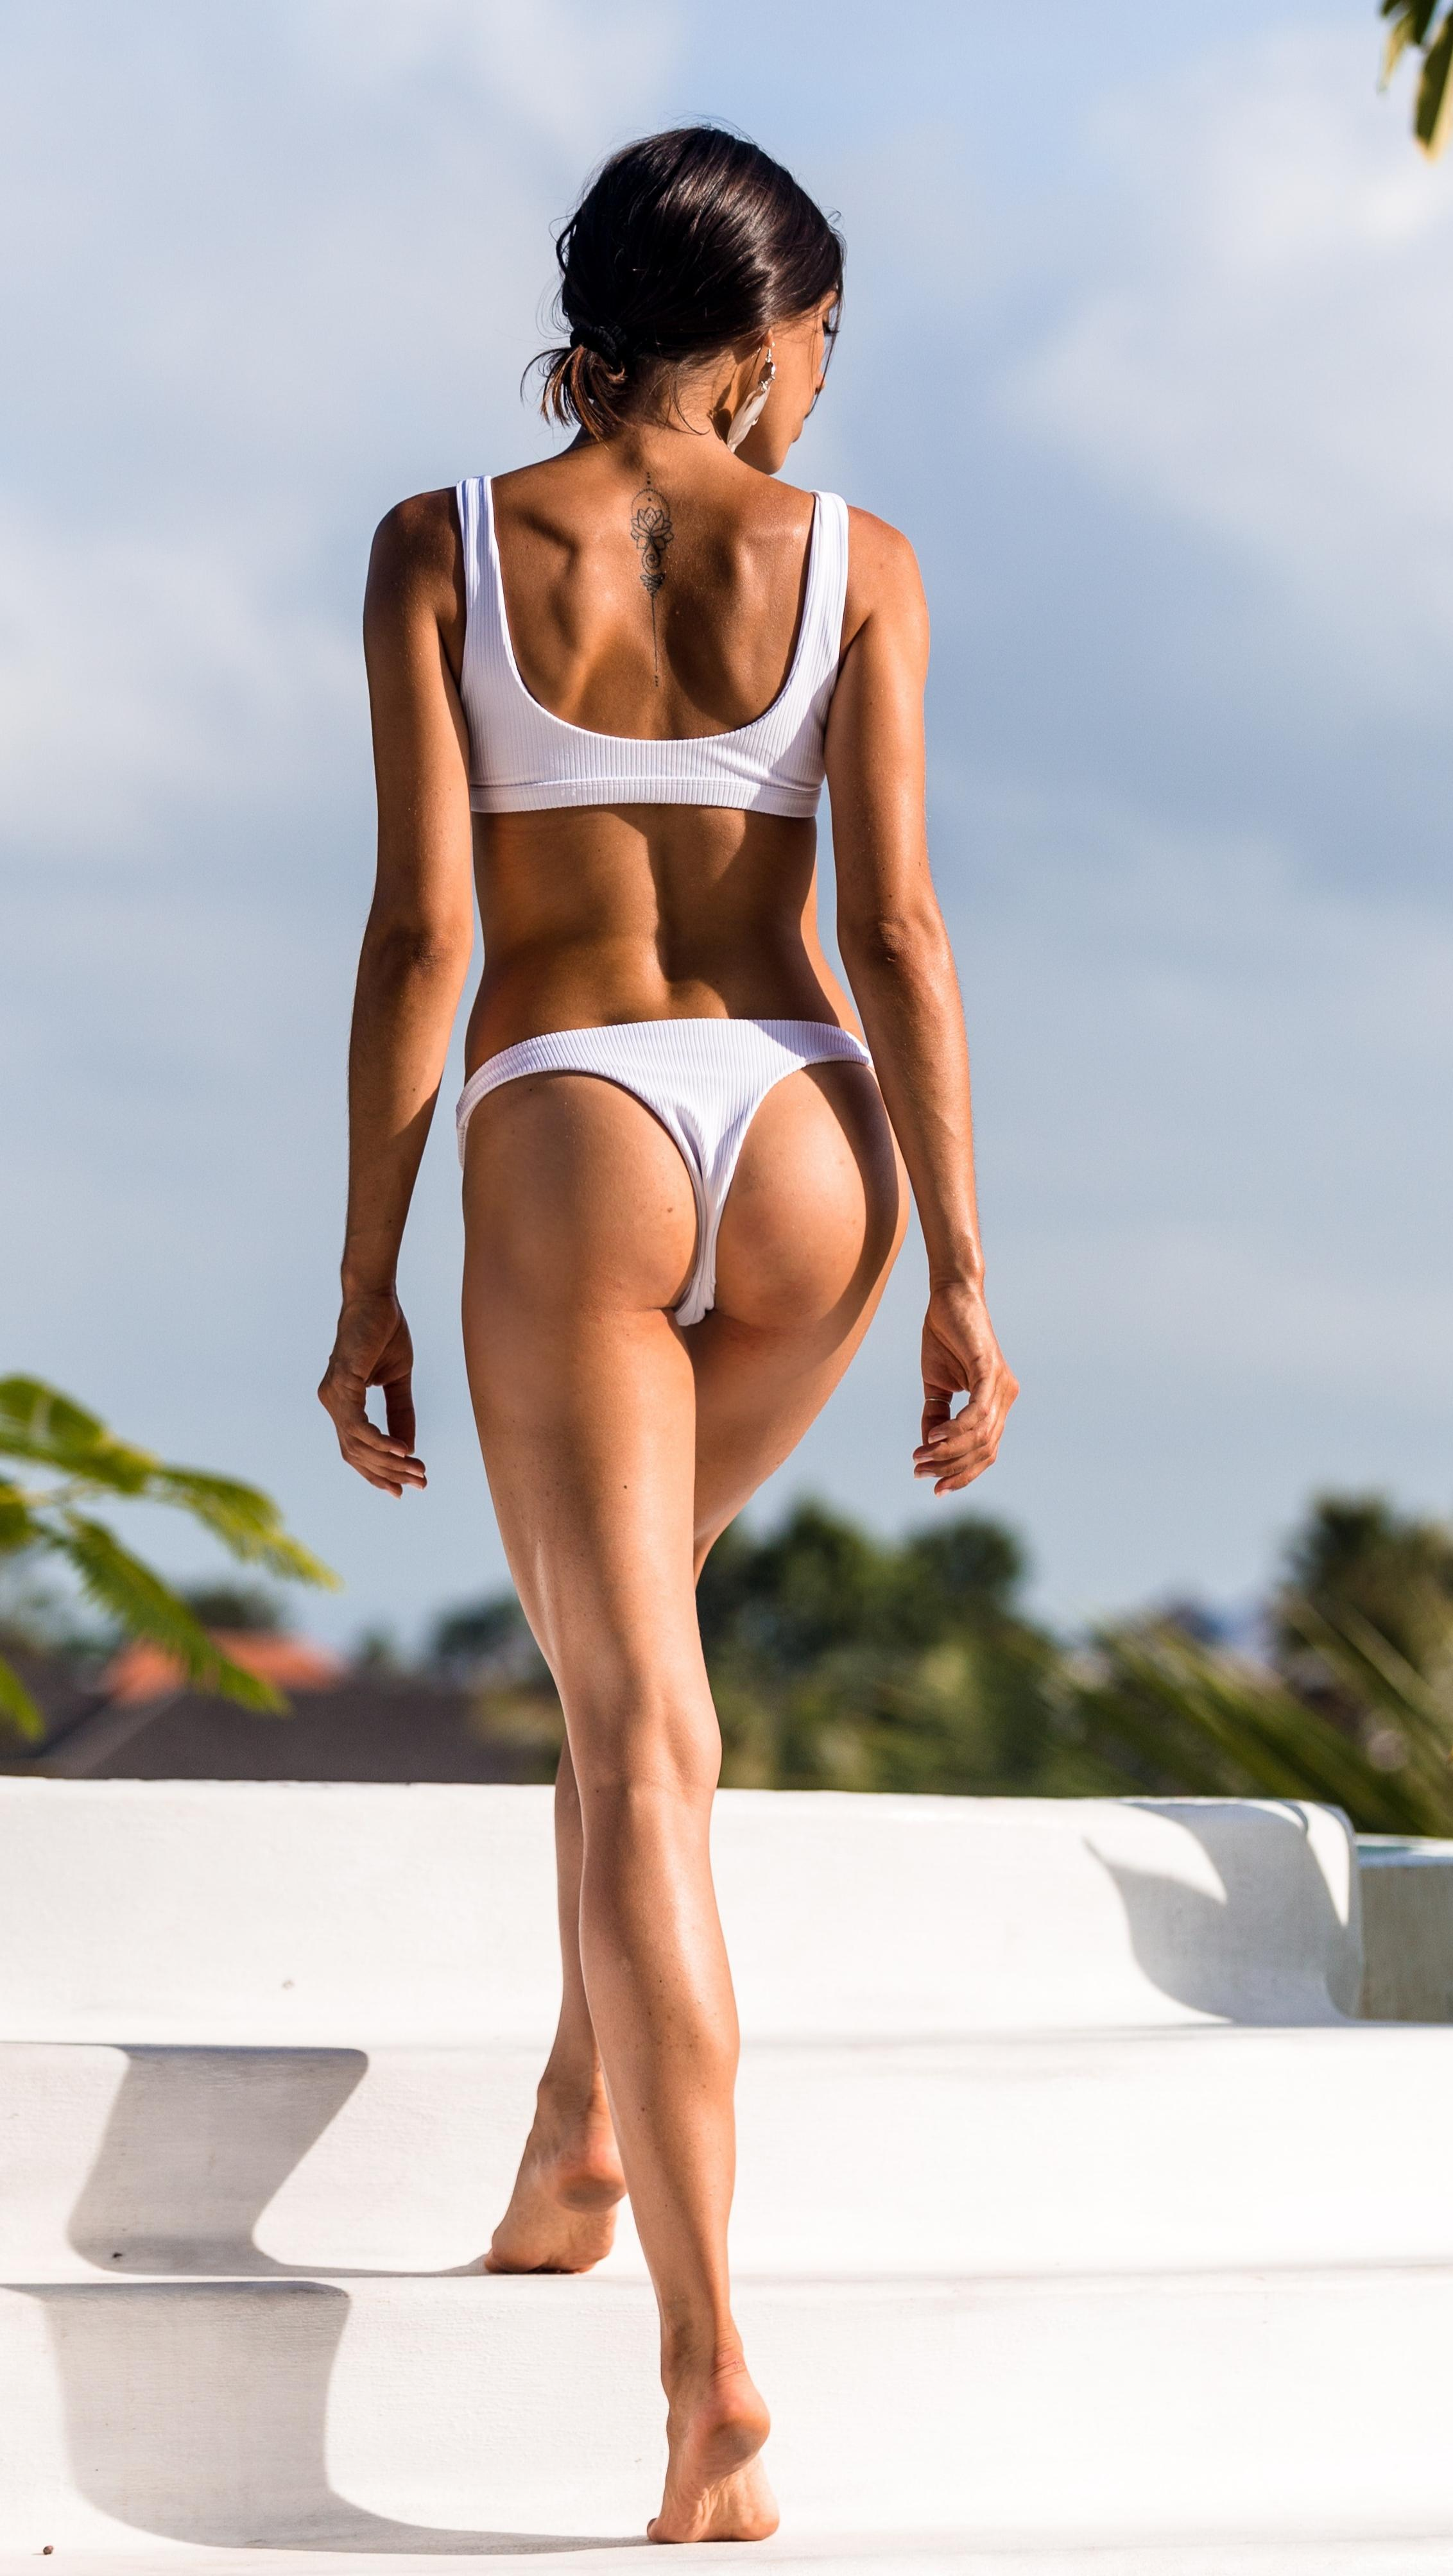 Picture with tags: HD, Interesting, Swimsuit, Unknown model, Ass, Girl